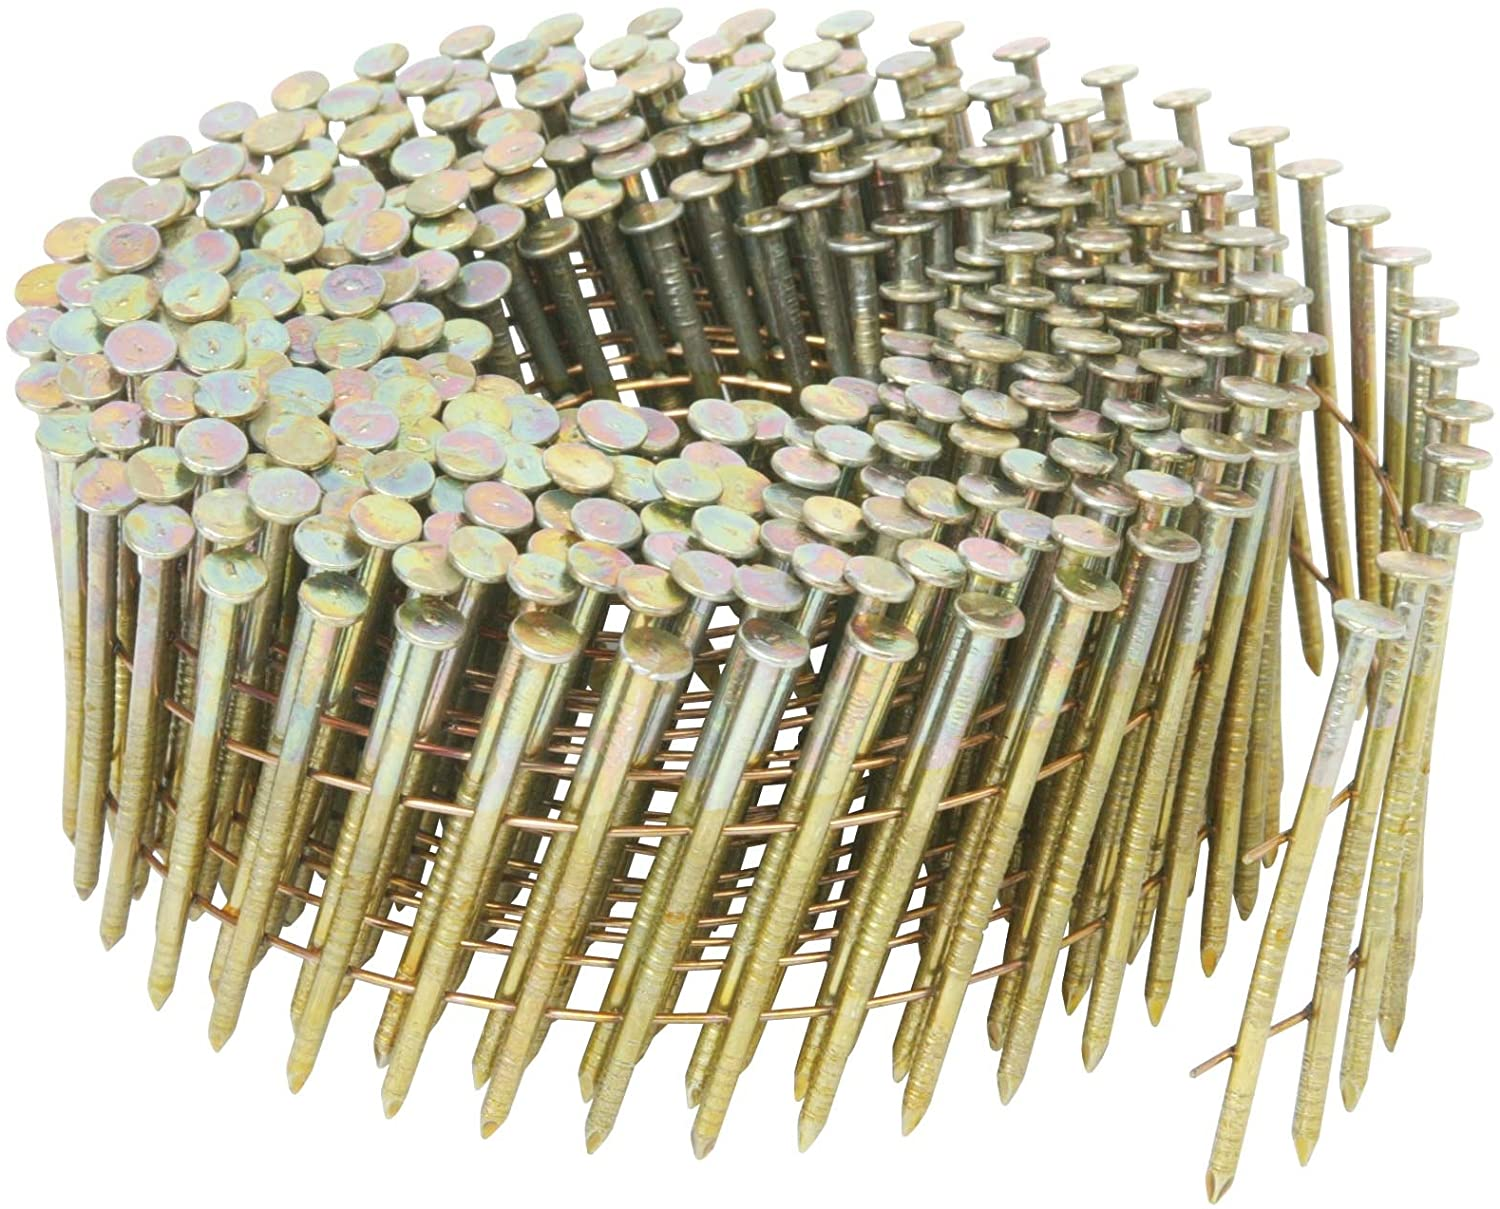 Metabo HPT 13339HPT 2-1/4 in. x 0.092 in. Smooth Shank Electro-Galvanized Wire Coil Siding Nails for NV65AH | 3600 Count